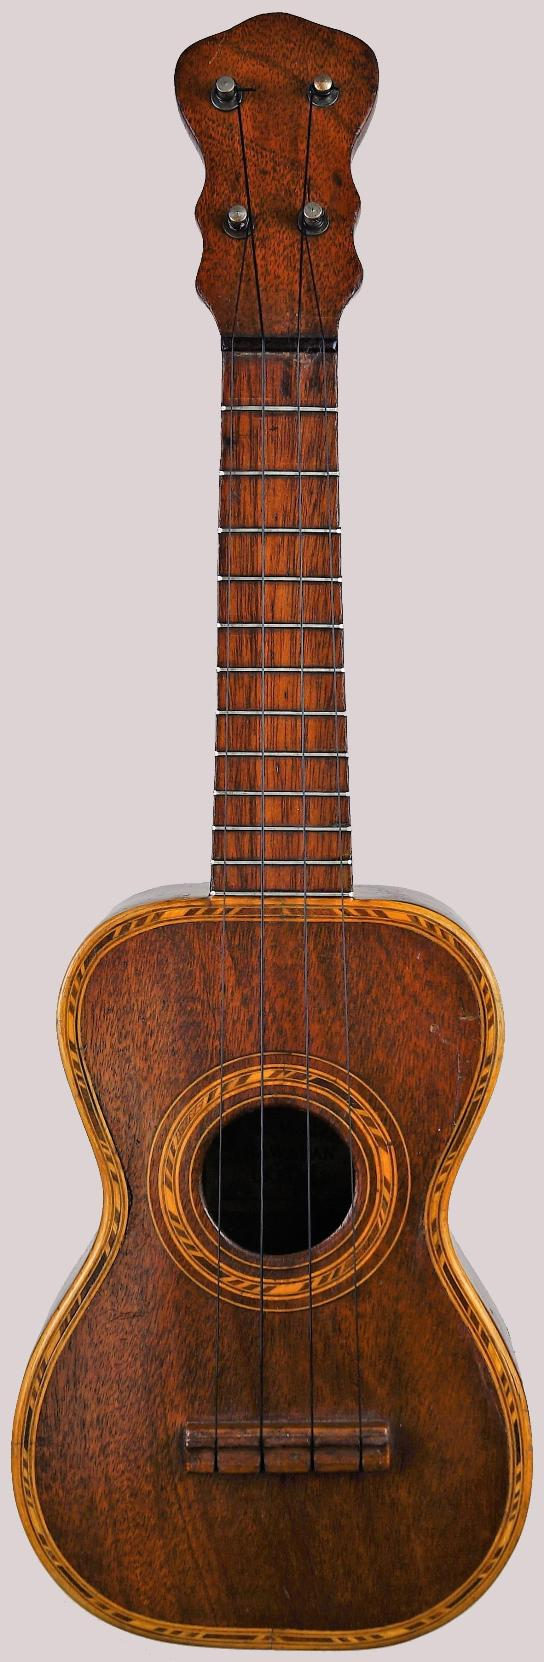 Louis Viohl and Sons New York 1920s at ukulele corner